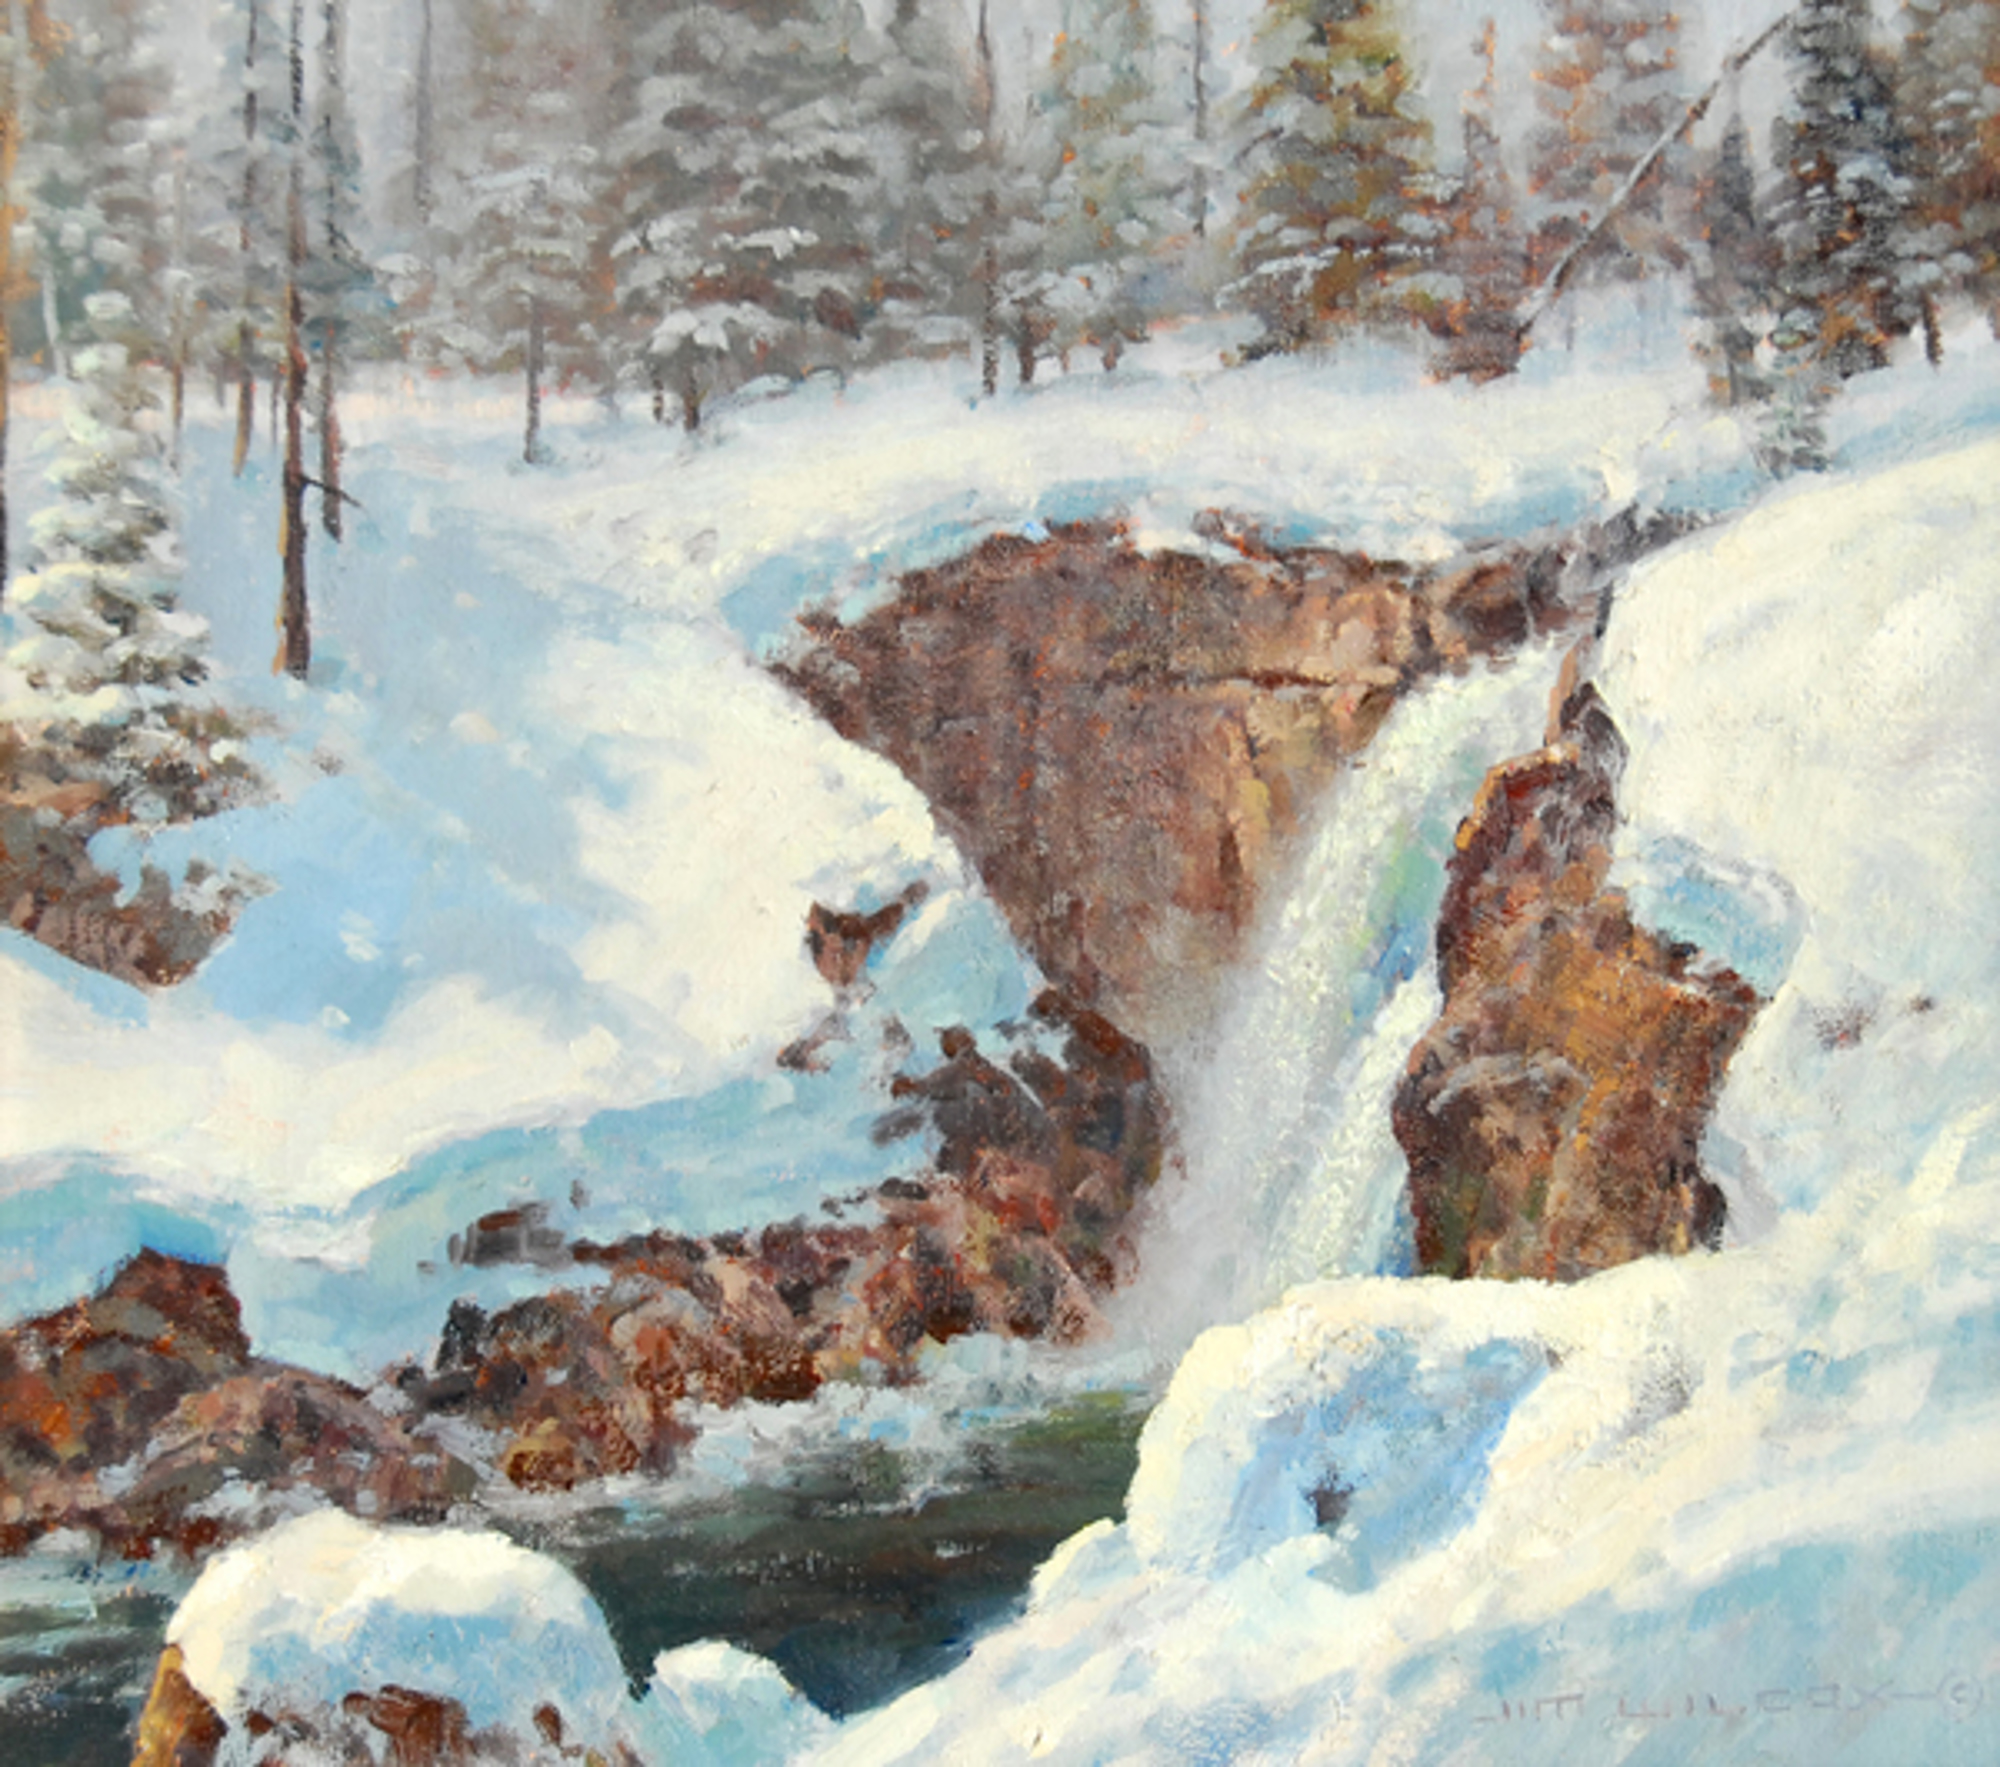 Moose Falls by Jim Wilcox